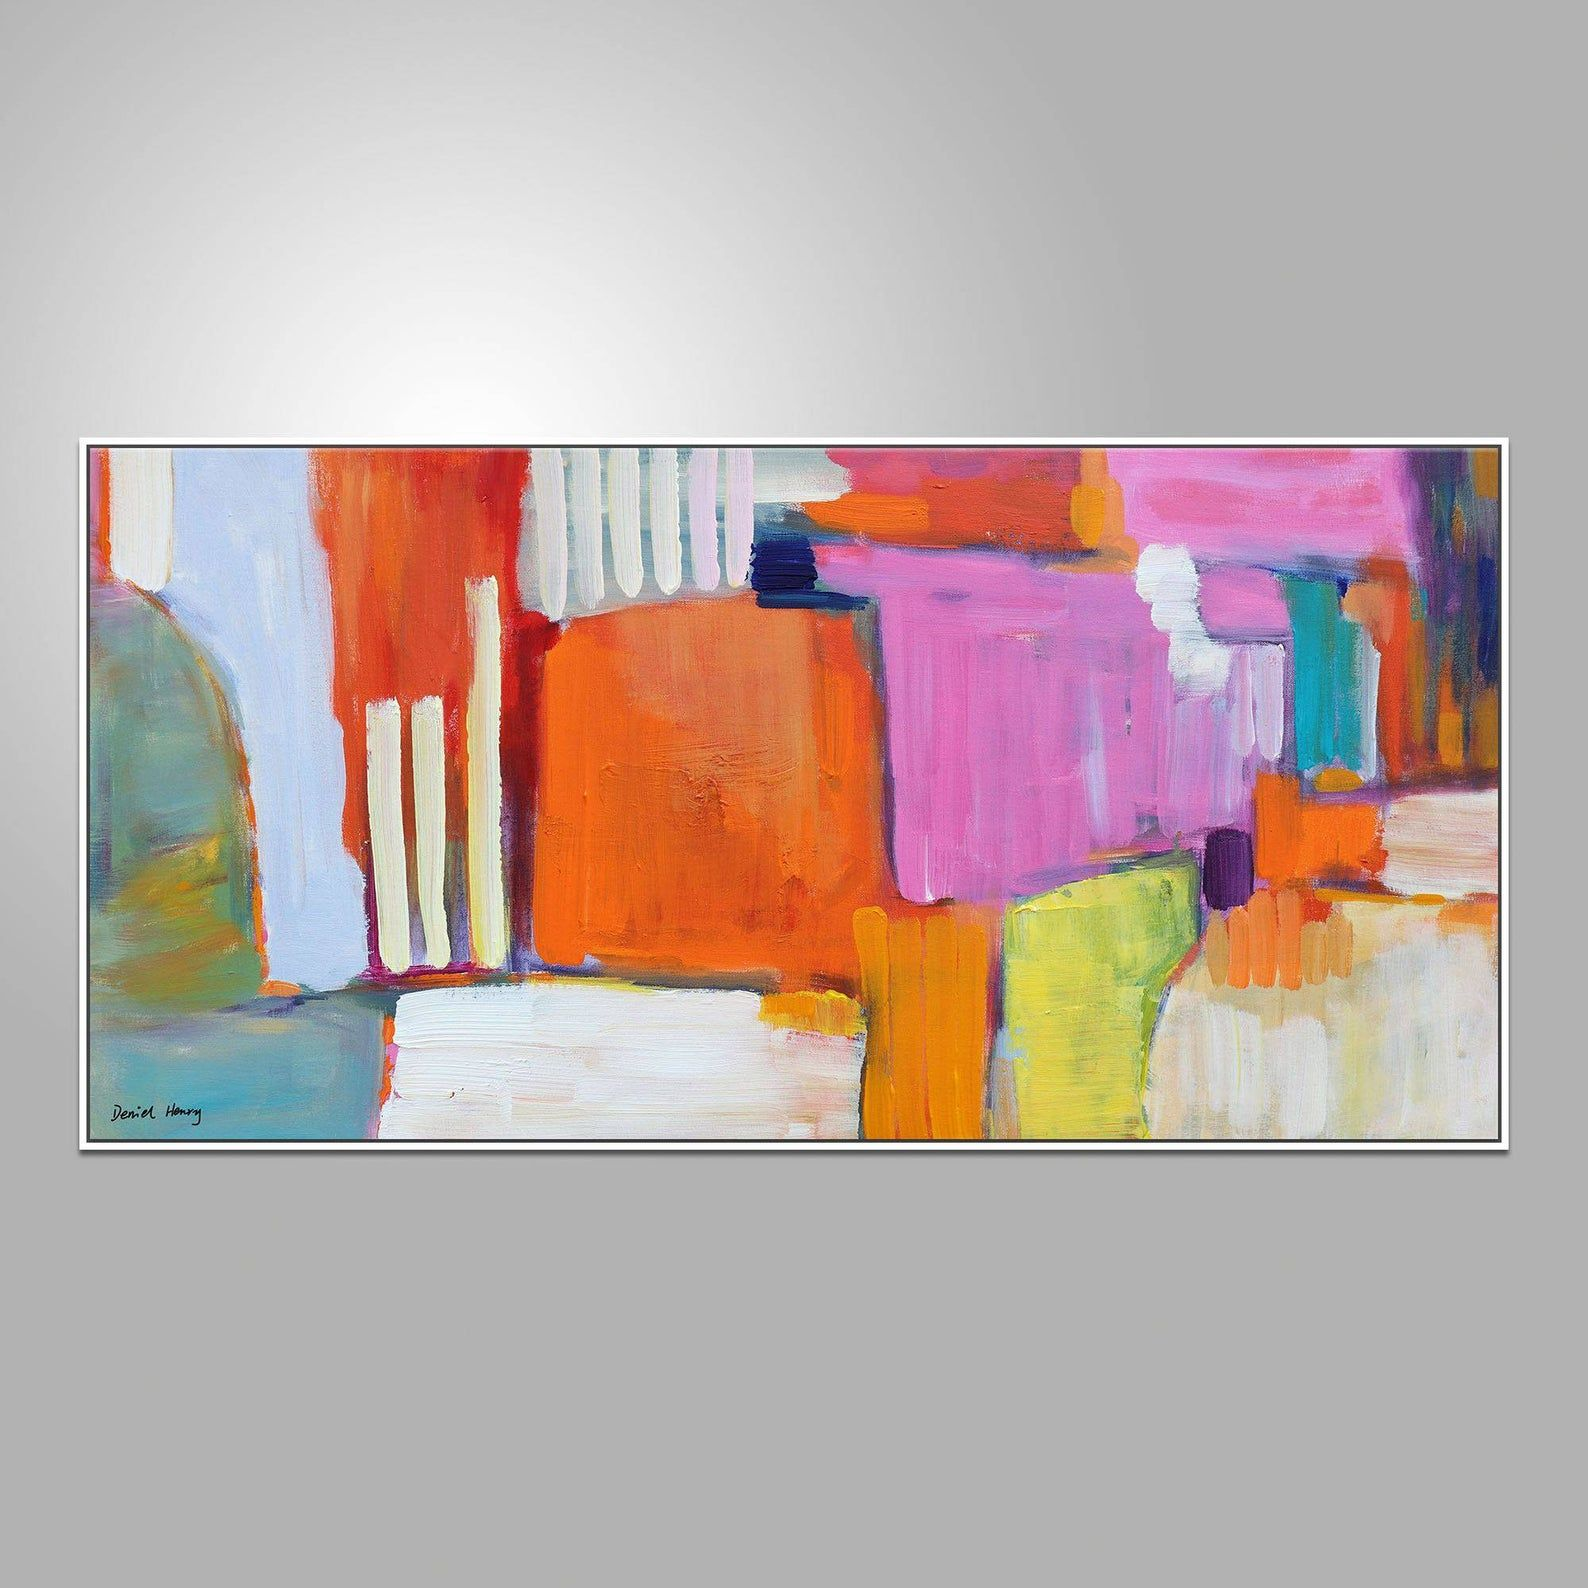 Modern Painting Large Abstract Painting Modern Art Abstract Canvas Art Wall Hanging Original Artwork Oil Painting Abstract Abstrakte Malerei Moderne Kunst Moderne Malerei